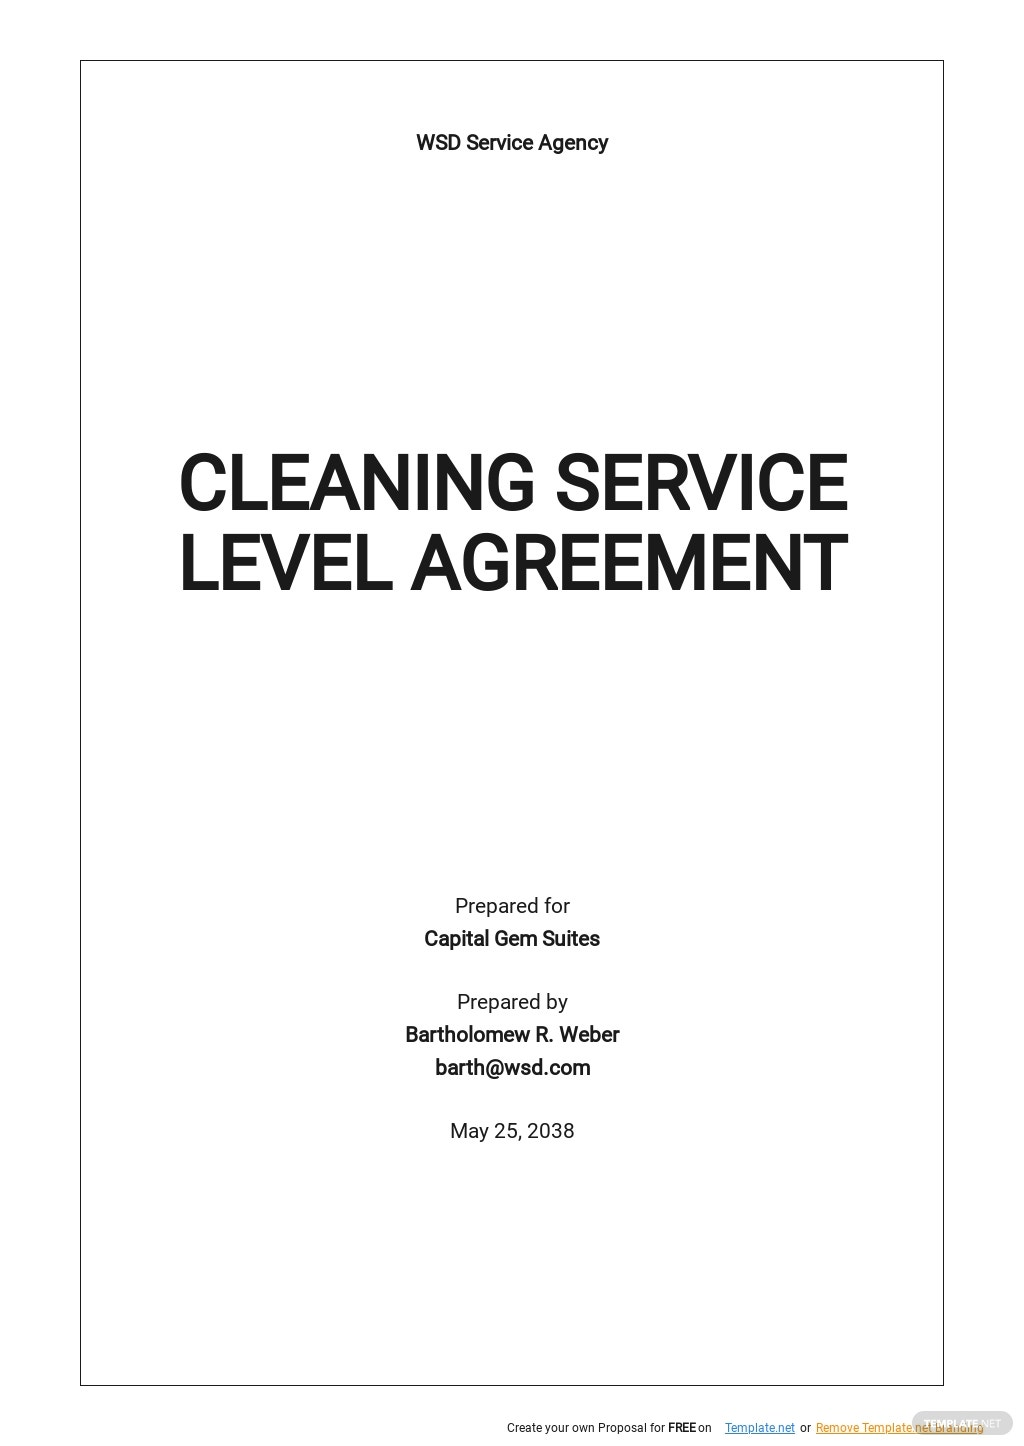 Free Cleaning Service Level Agreement Template.jpe